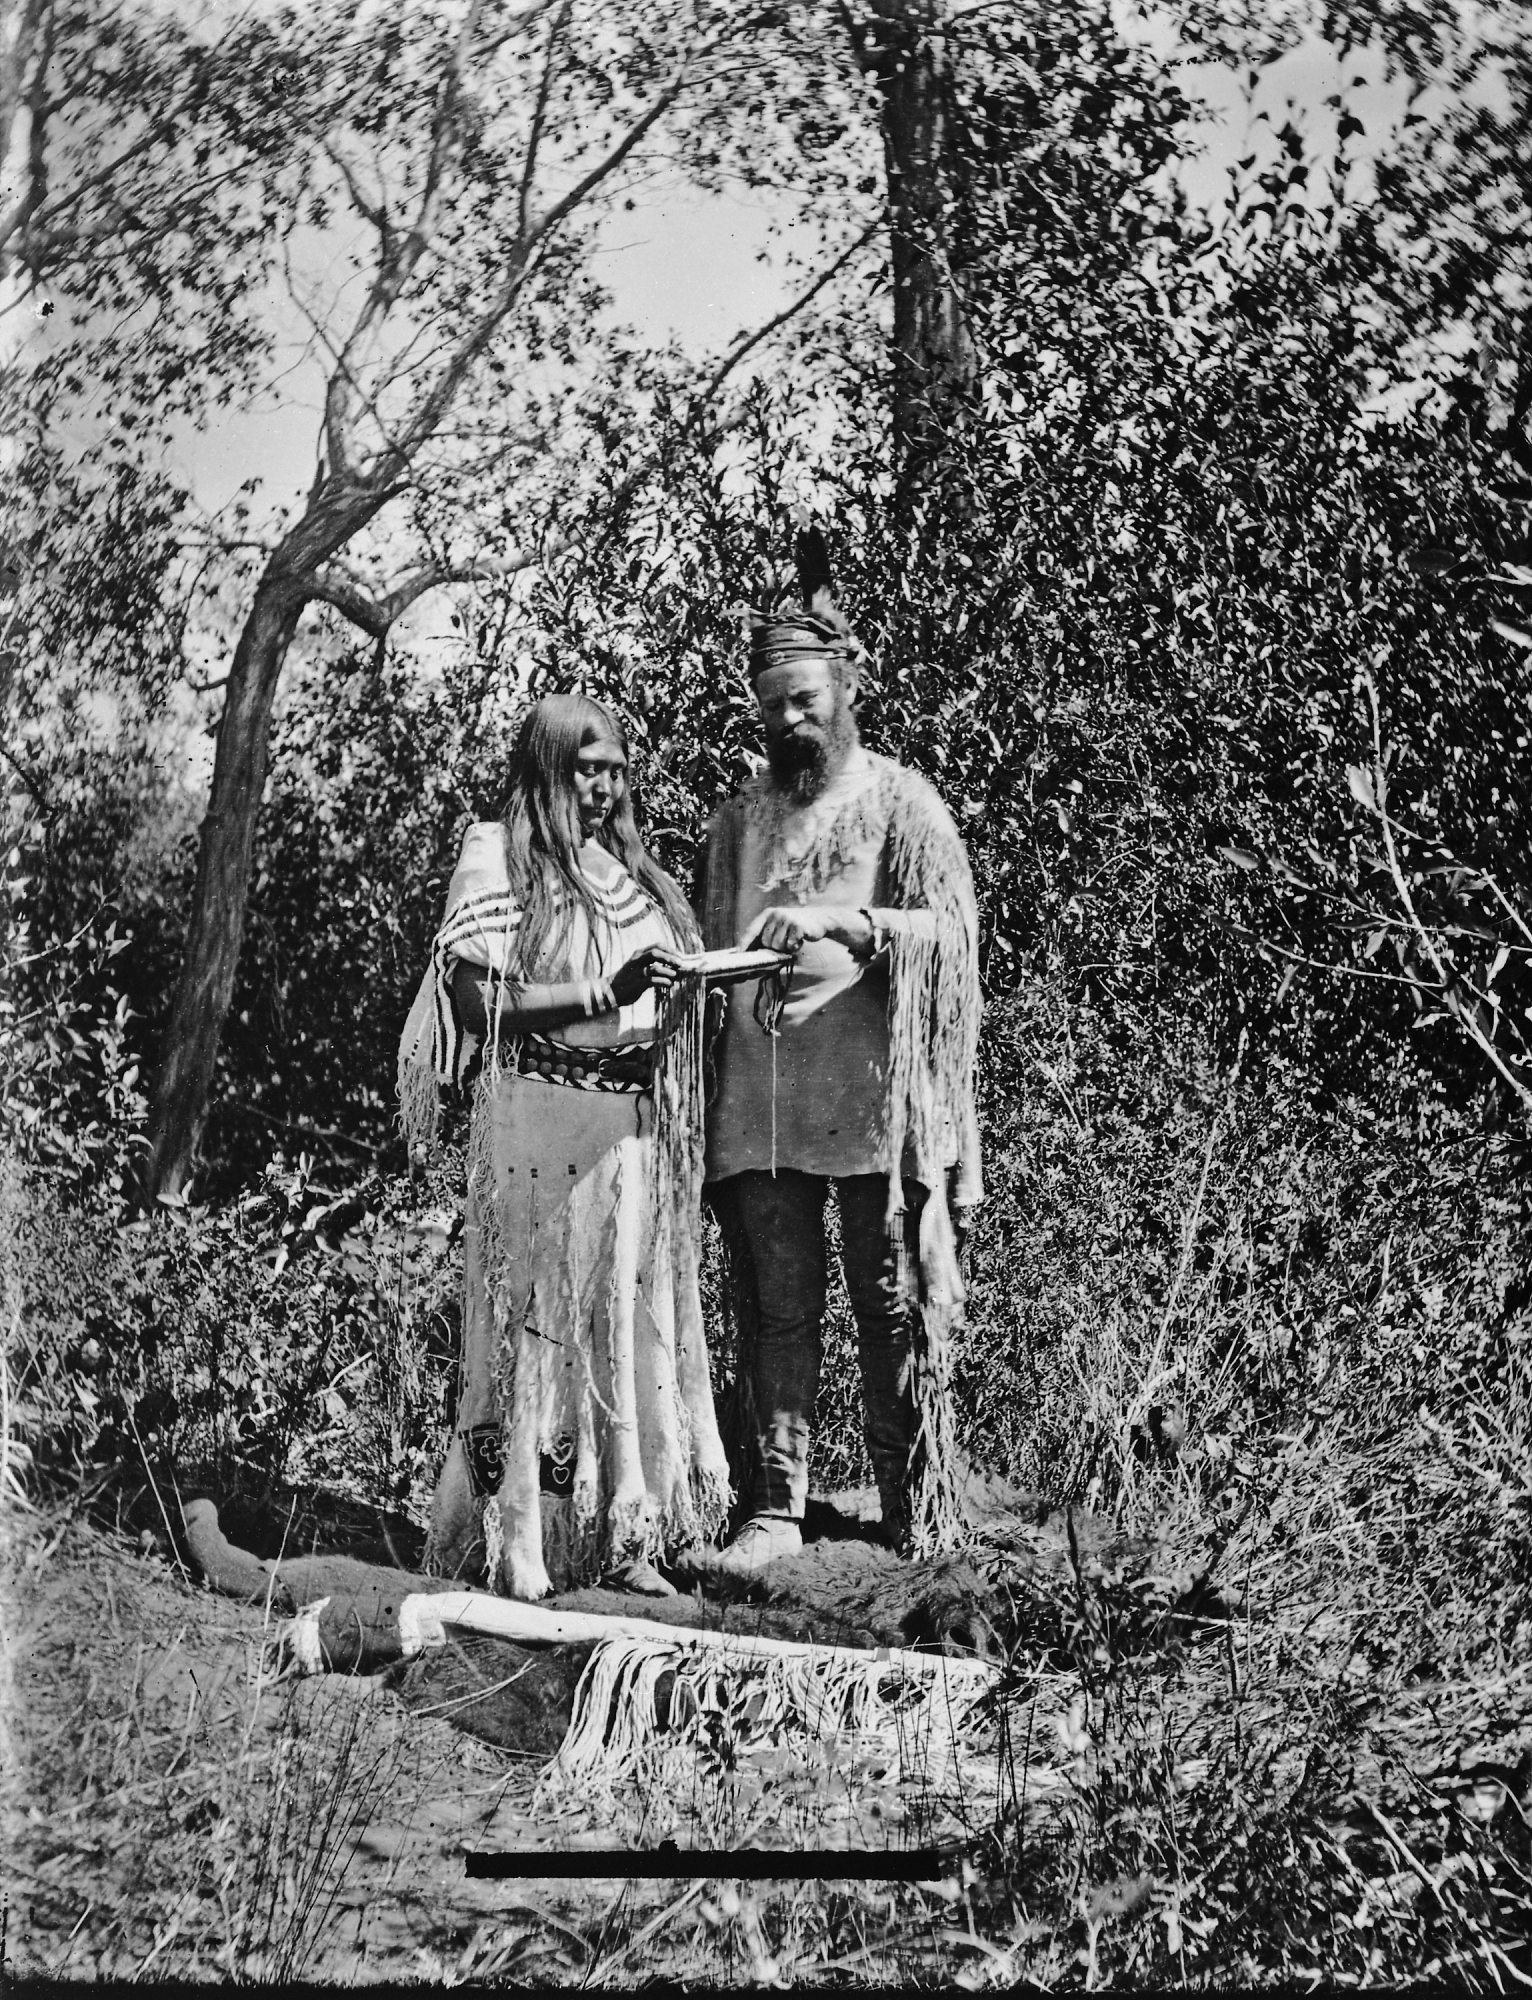 John Wesley Powell with Native American Woman